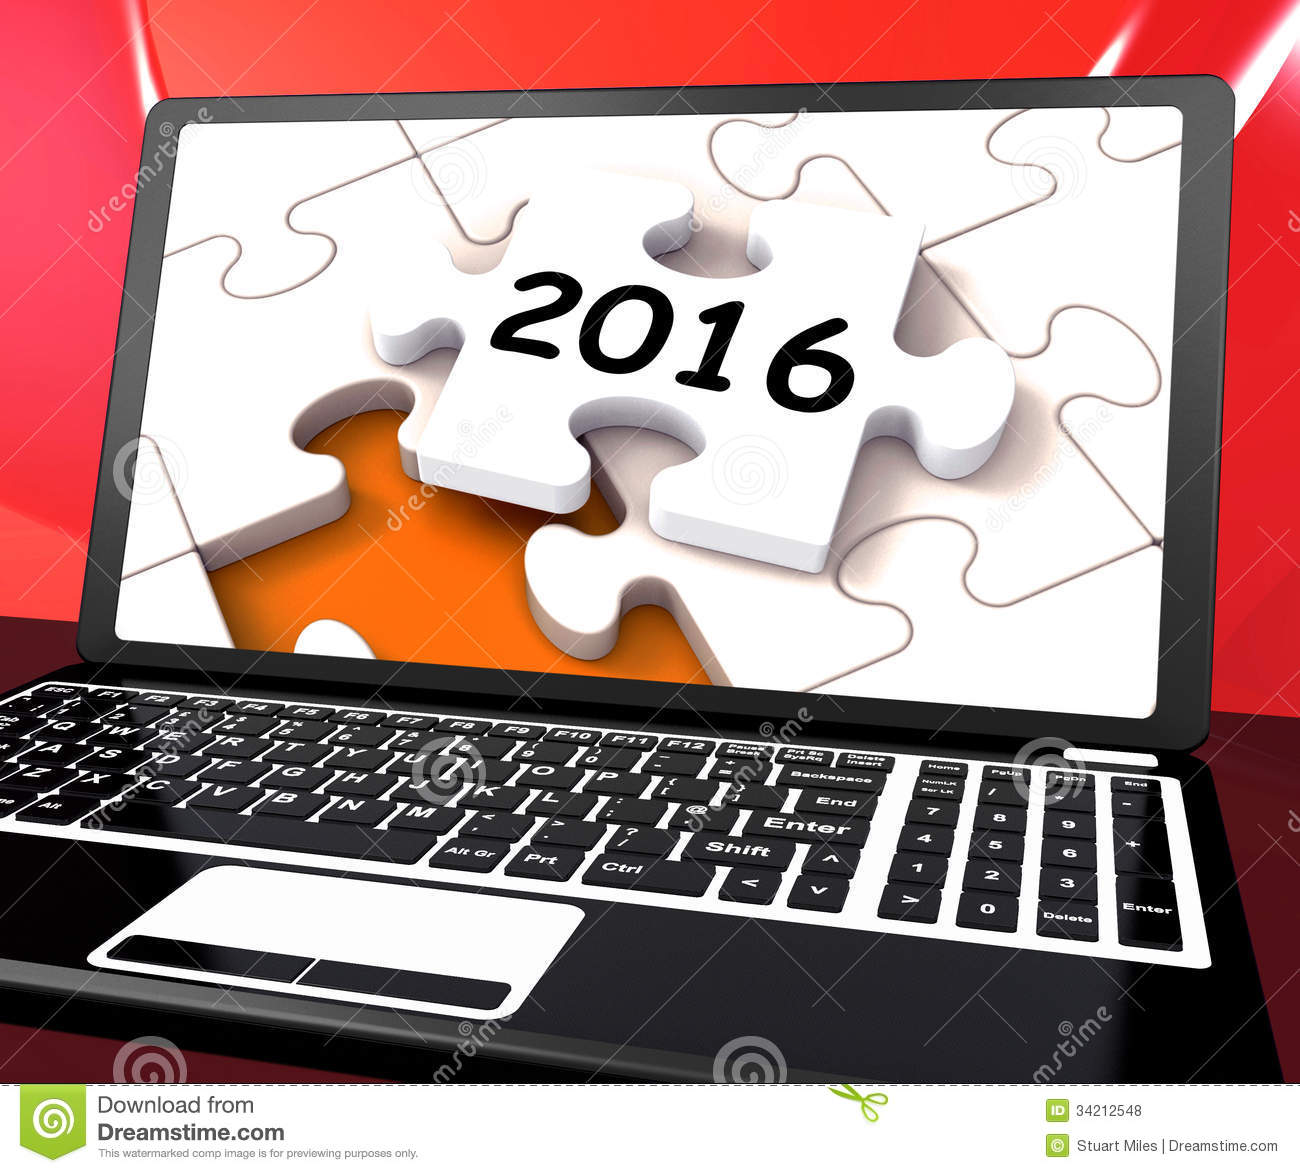 Two Thousand And Sixteen On Laptop Showing New Years Resolution 2016.